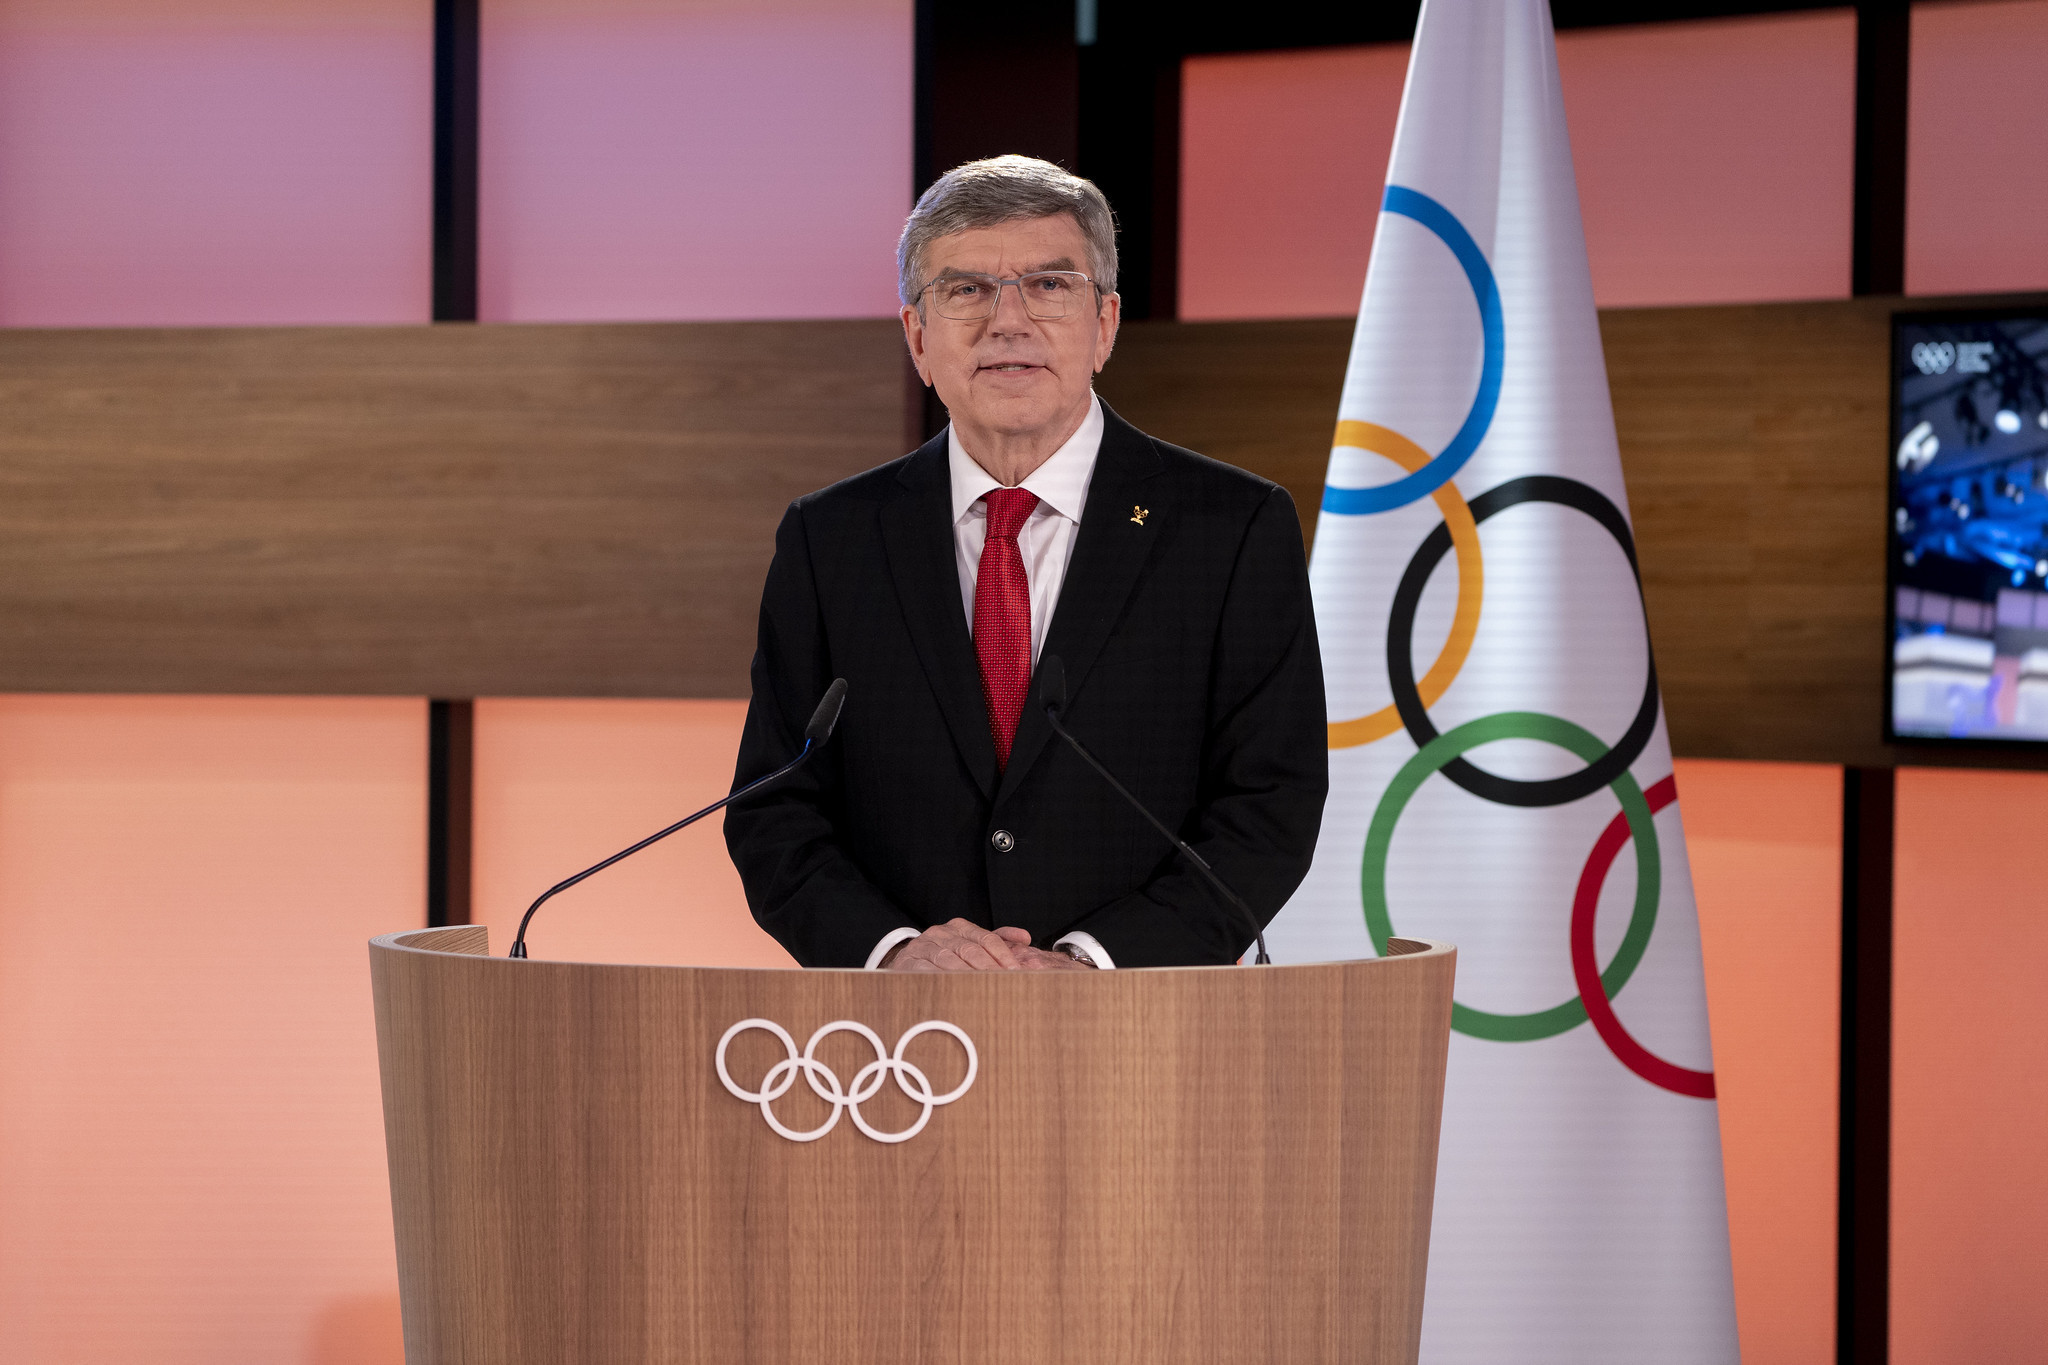 Bach re-elected International Olympic Committee President